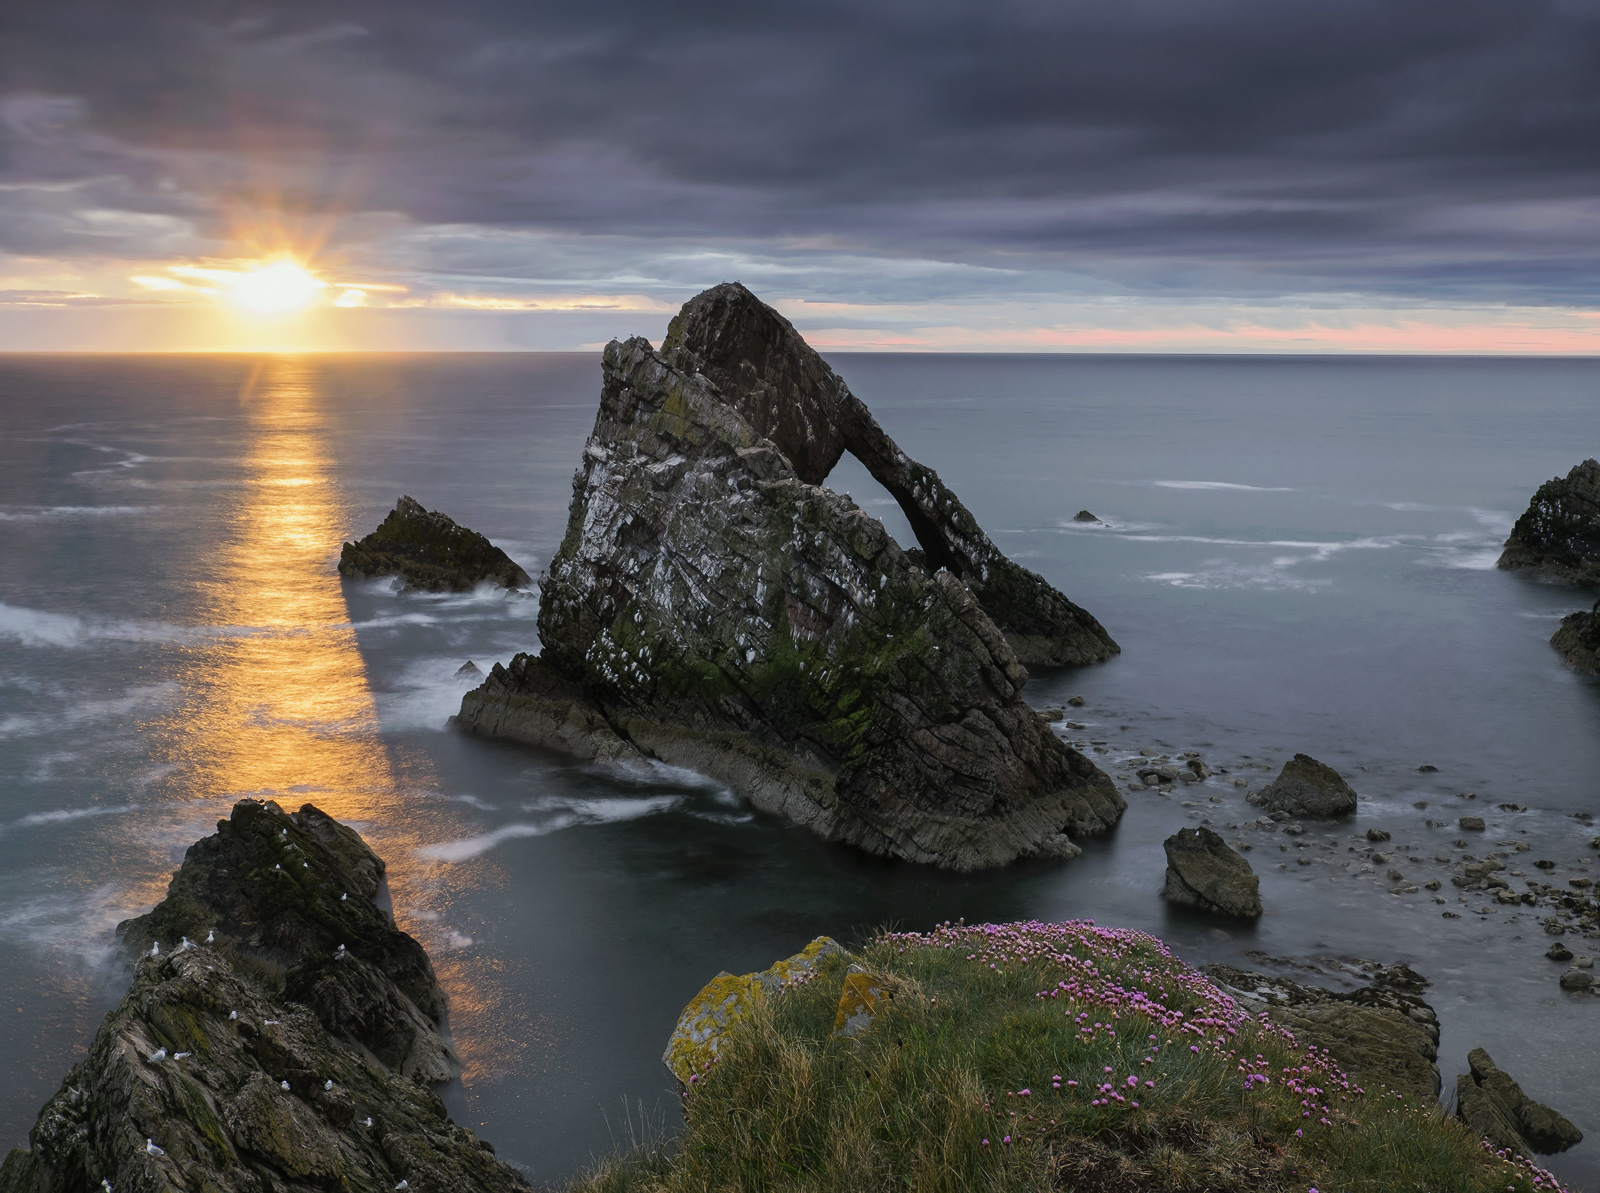 A reluctant summer sunrise over the Bowfiddle rock with pink nodding thrift adorning the top of the cliffs.  A beam of transient...